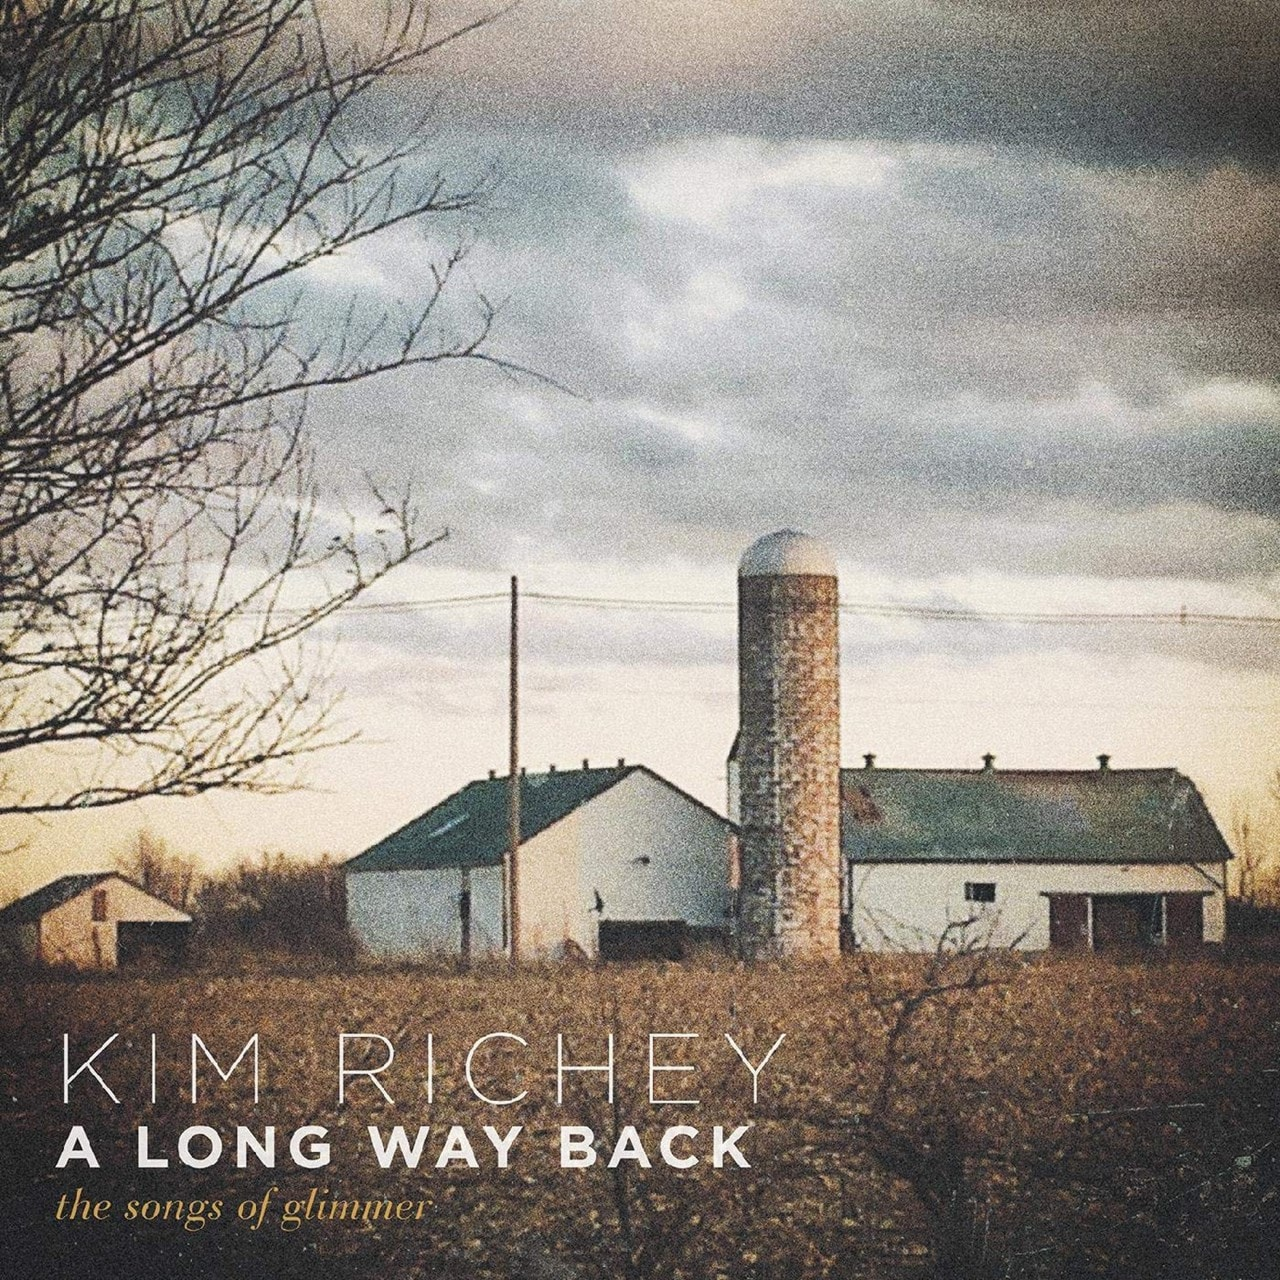 A Long Way Back: The Songs of Glimmer - 1